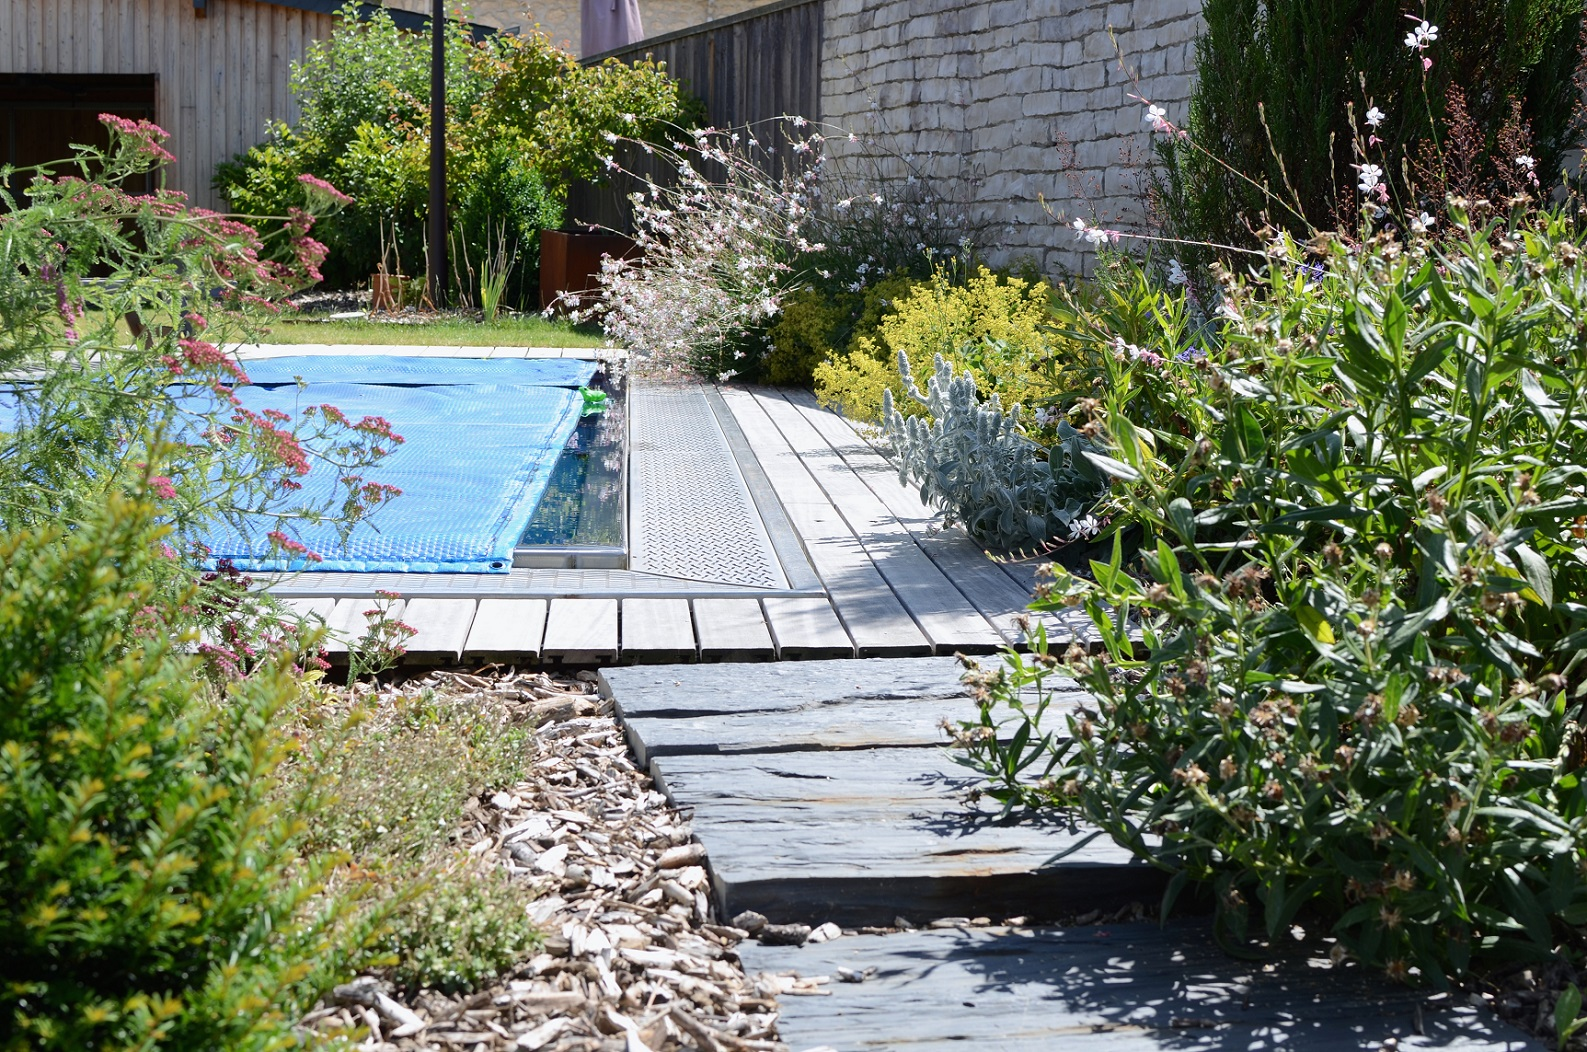 Am nagement de piscine fl jardin paysagiste cr ateur for Amenagement jardin piscine